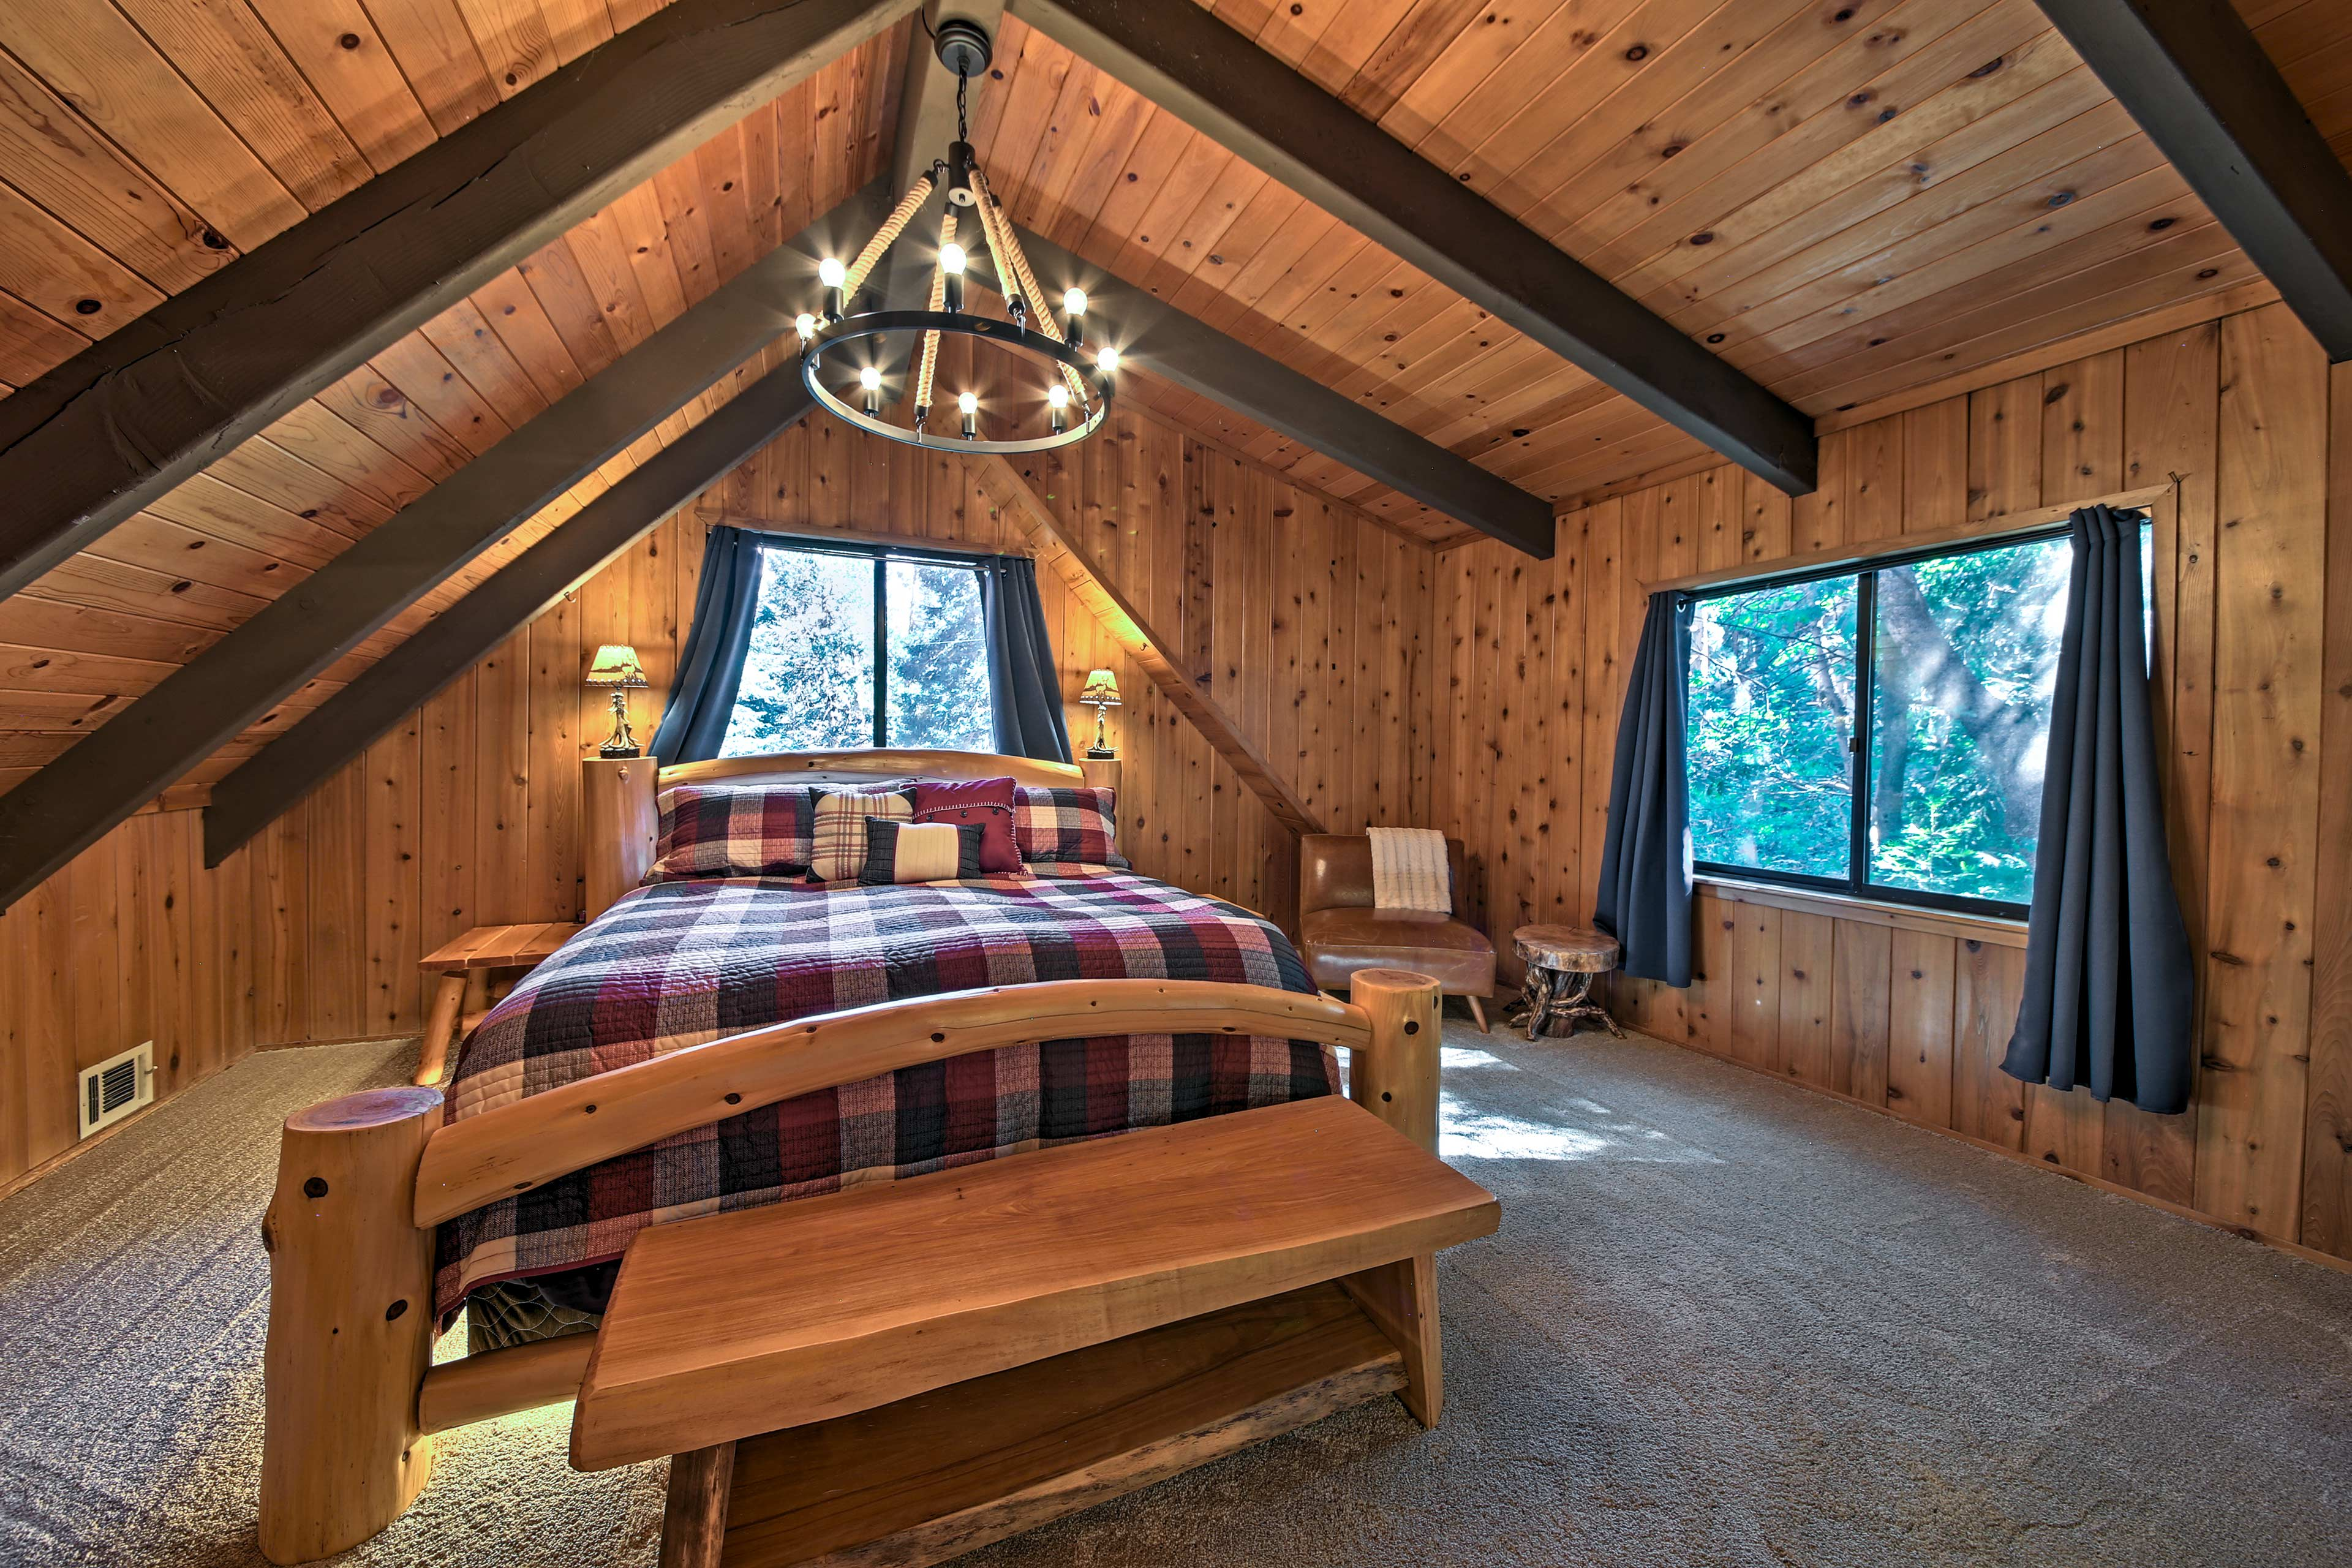 Sleep peacefully each night in the cloud-like king bed in the master bedroom.